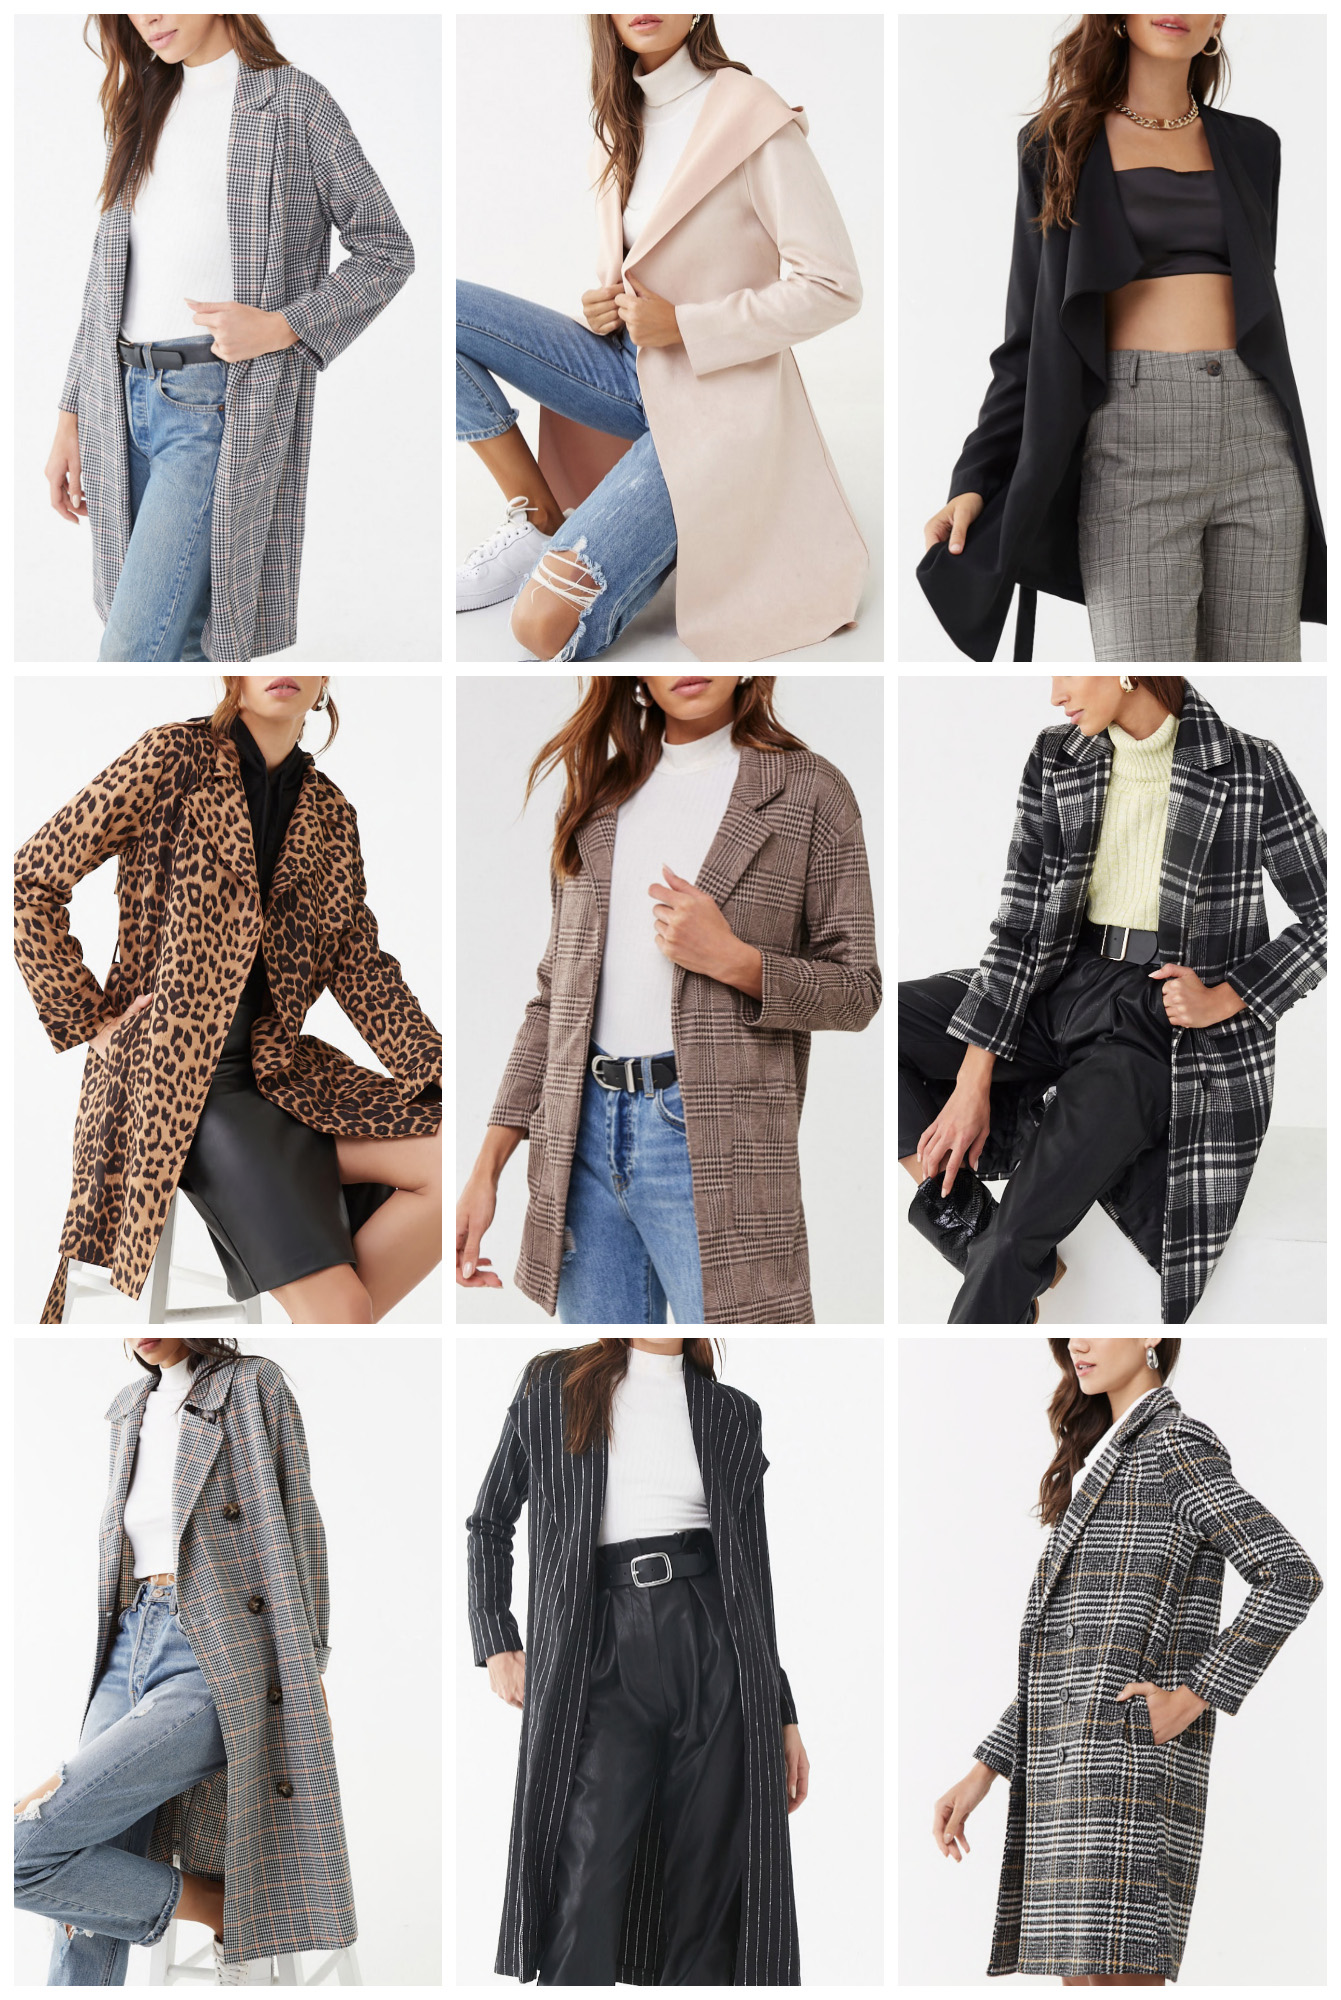 trench coats under $50 | affordable trench coats | leopard print |